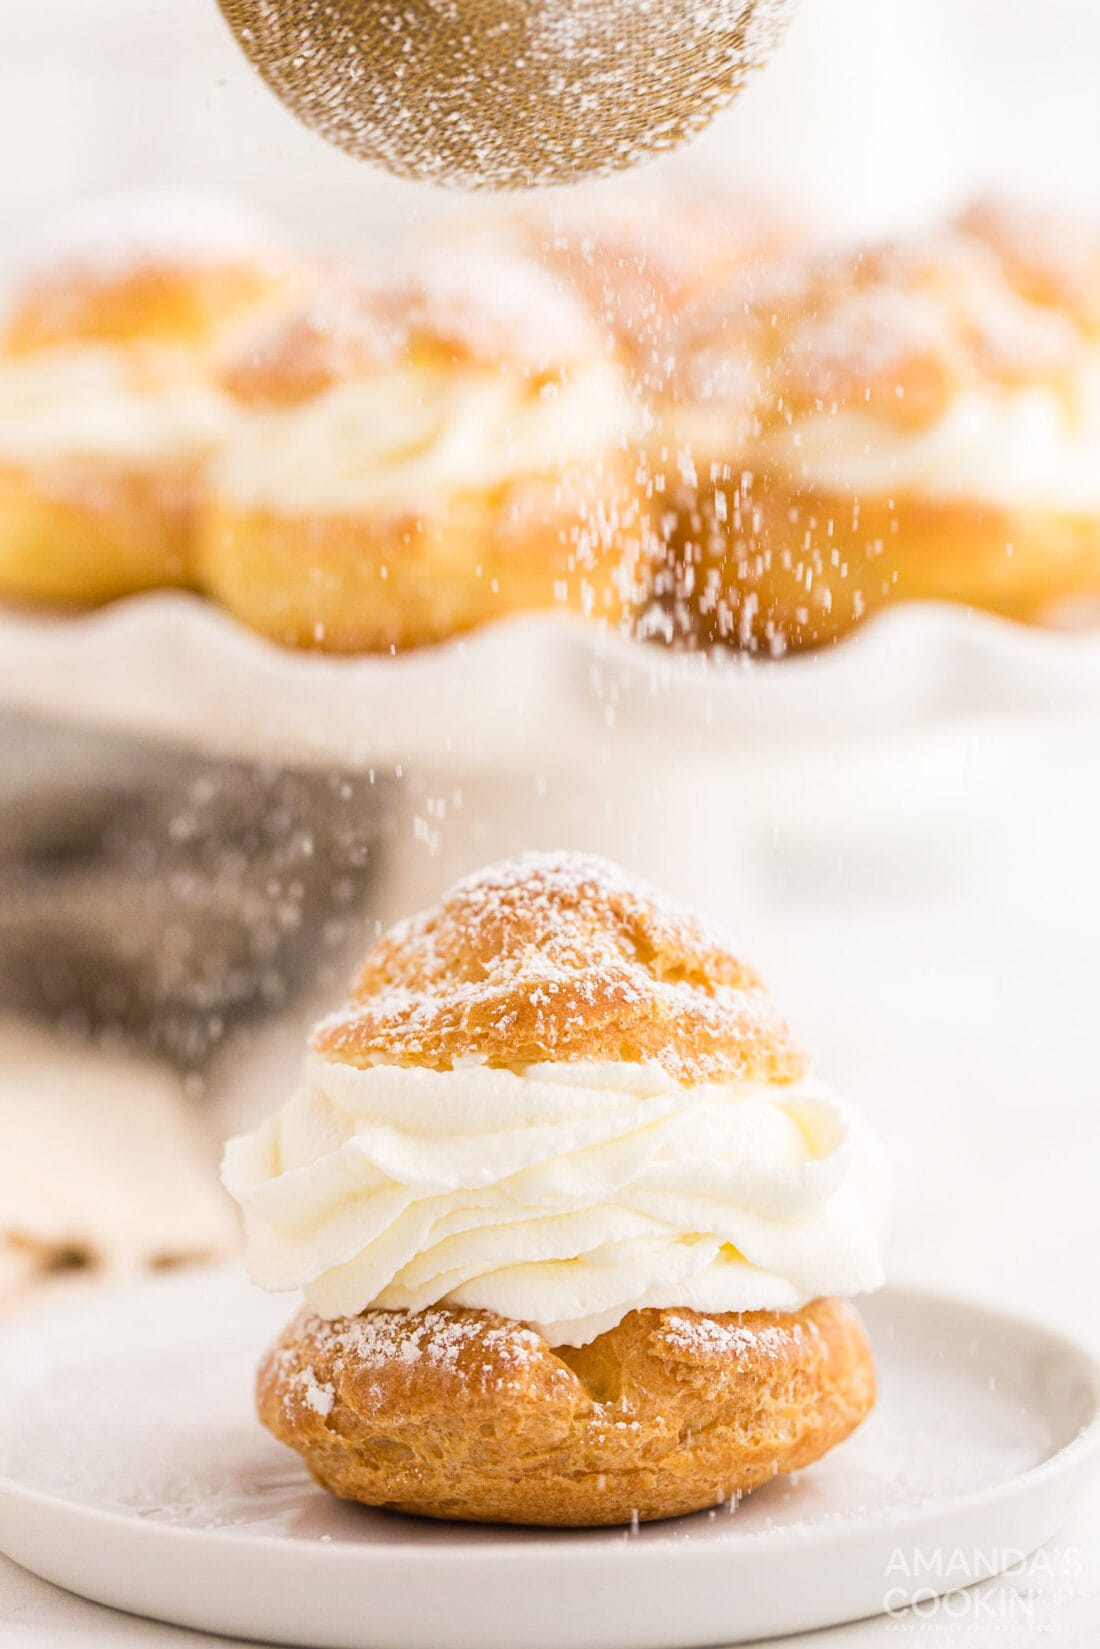 sifting powdered sugar on top of a Cream Puff